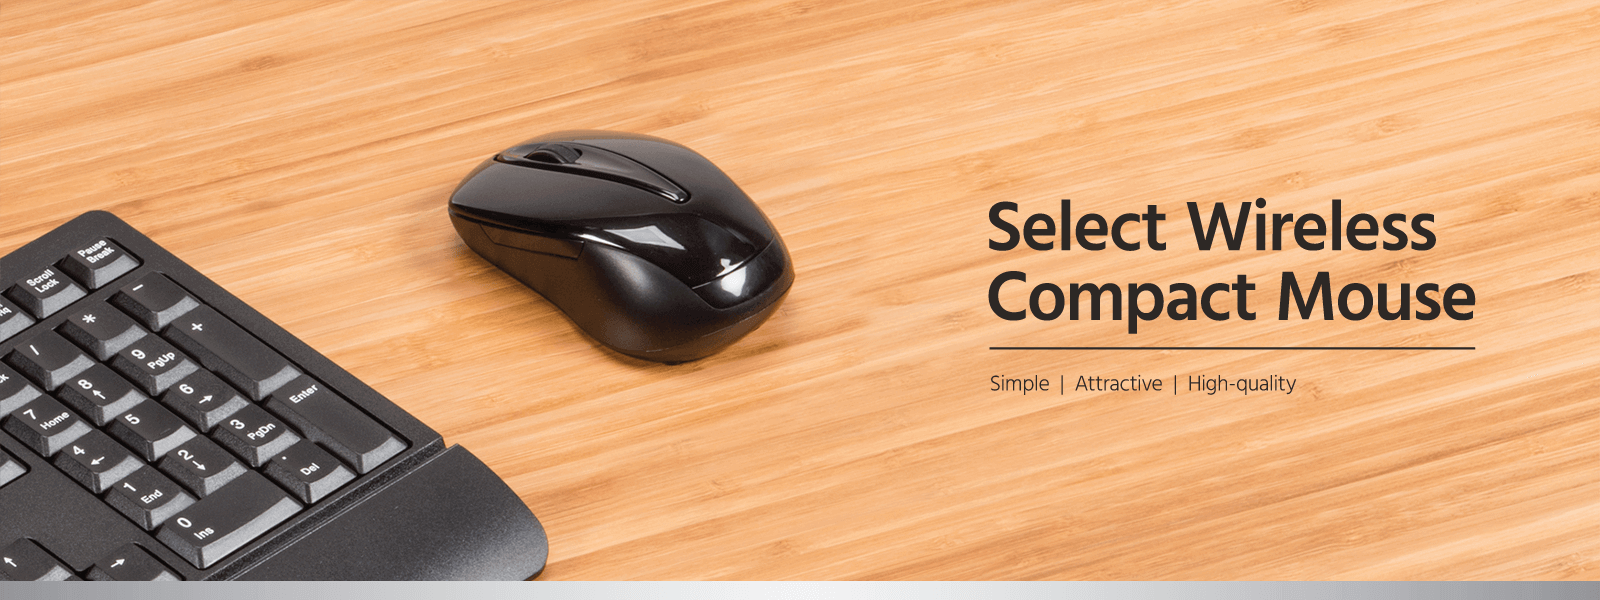 Select Wireless Compact Mouse